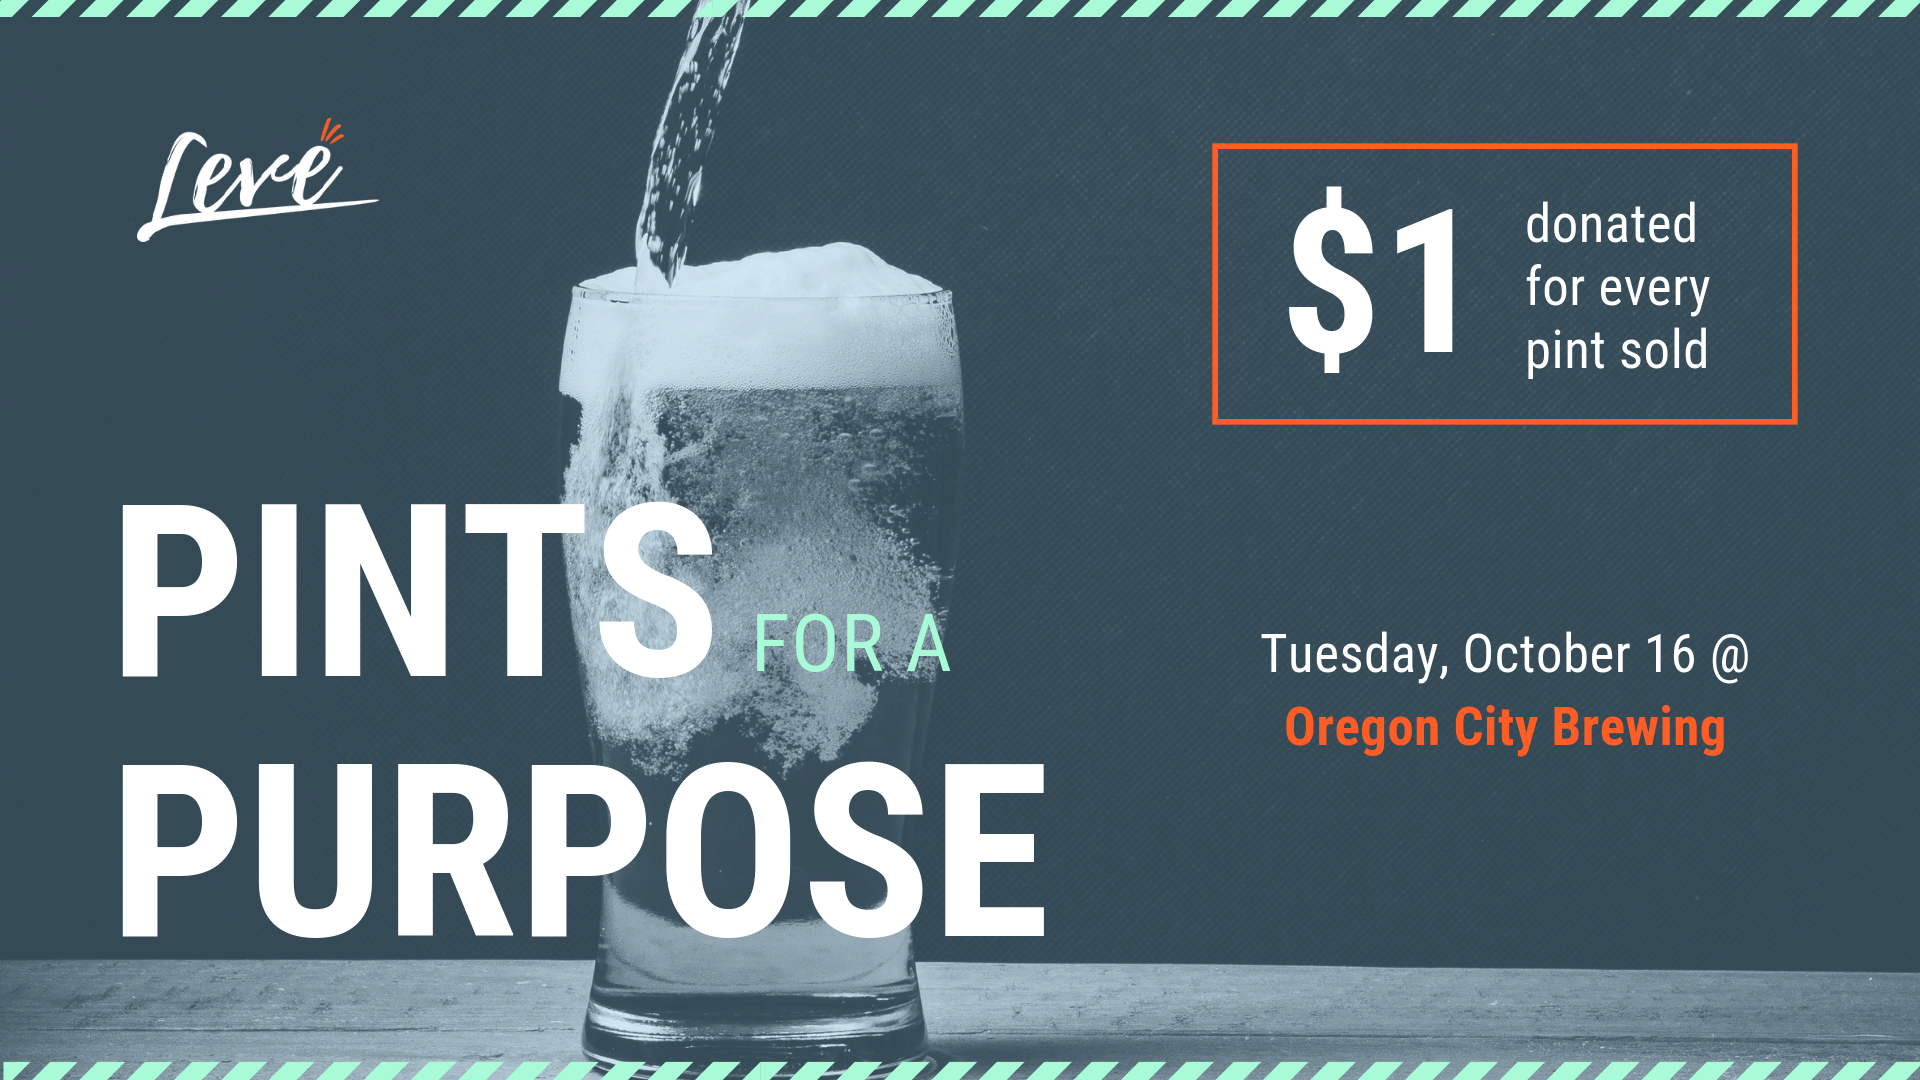 pints-for-a-purpose-oct16-facebook-event-cover (1).png